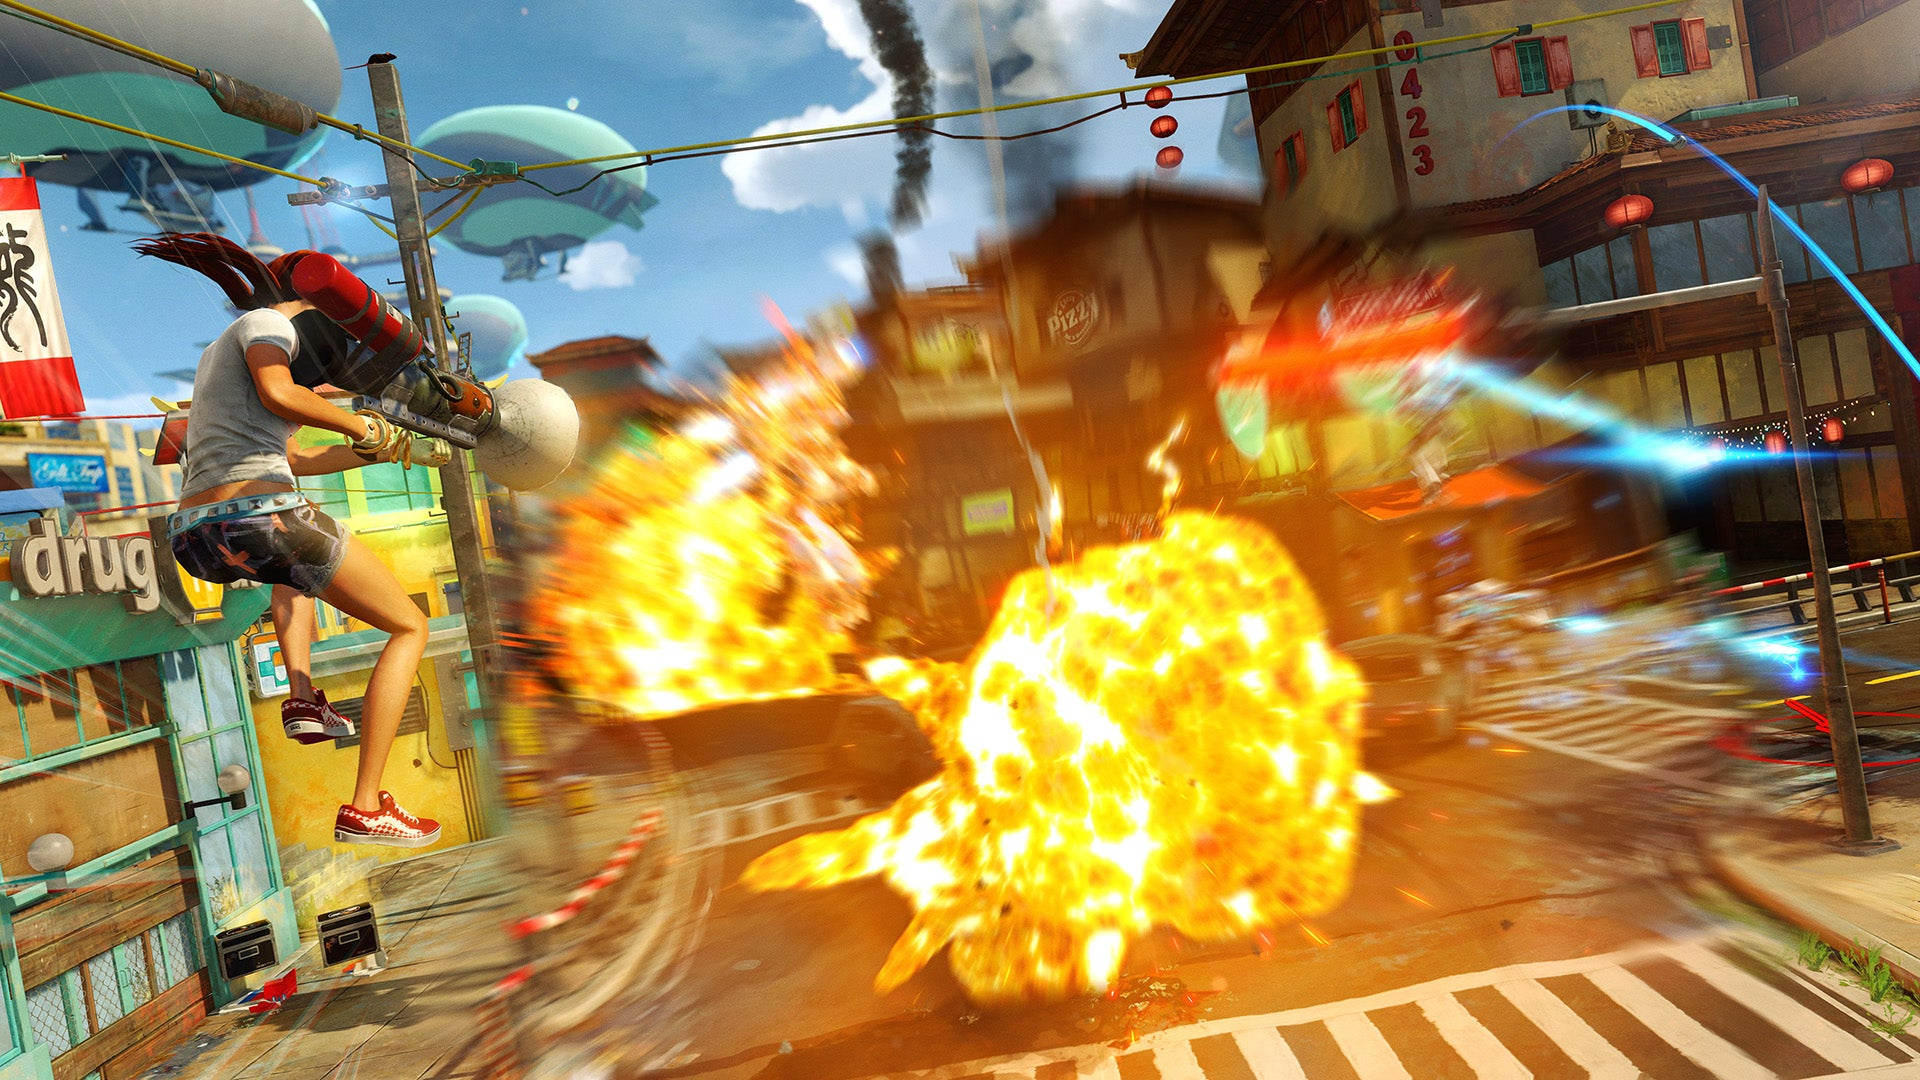 Sunset Overdrive: The Kotaku Review